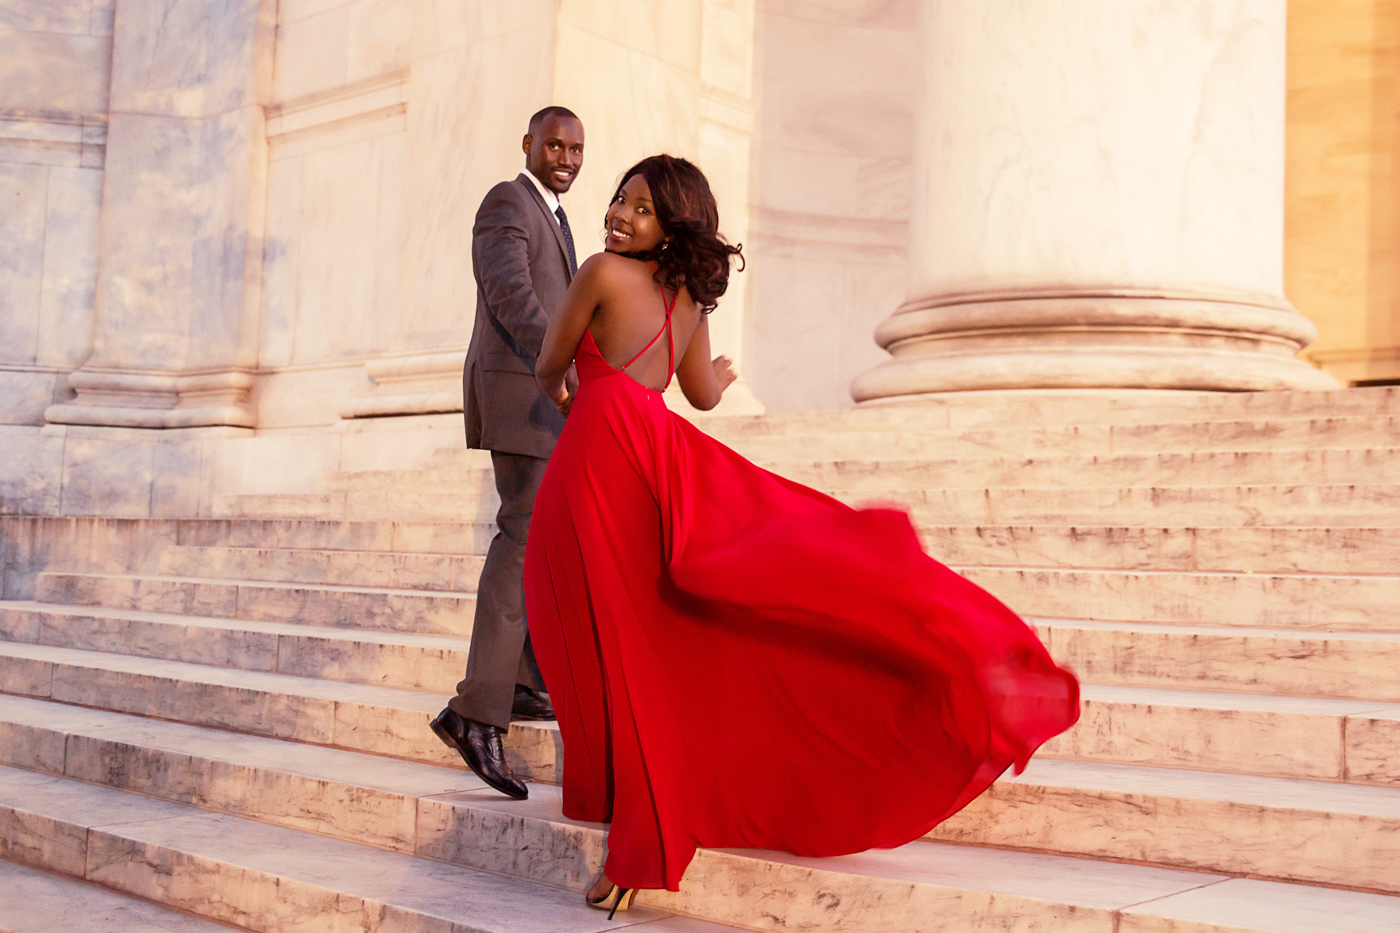 Jessica-Daniel-Engagement-Photo-Shoot-in-the-heart-of-Washington-DC-Ksenia-Pro-Photography-19